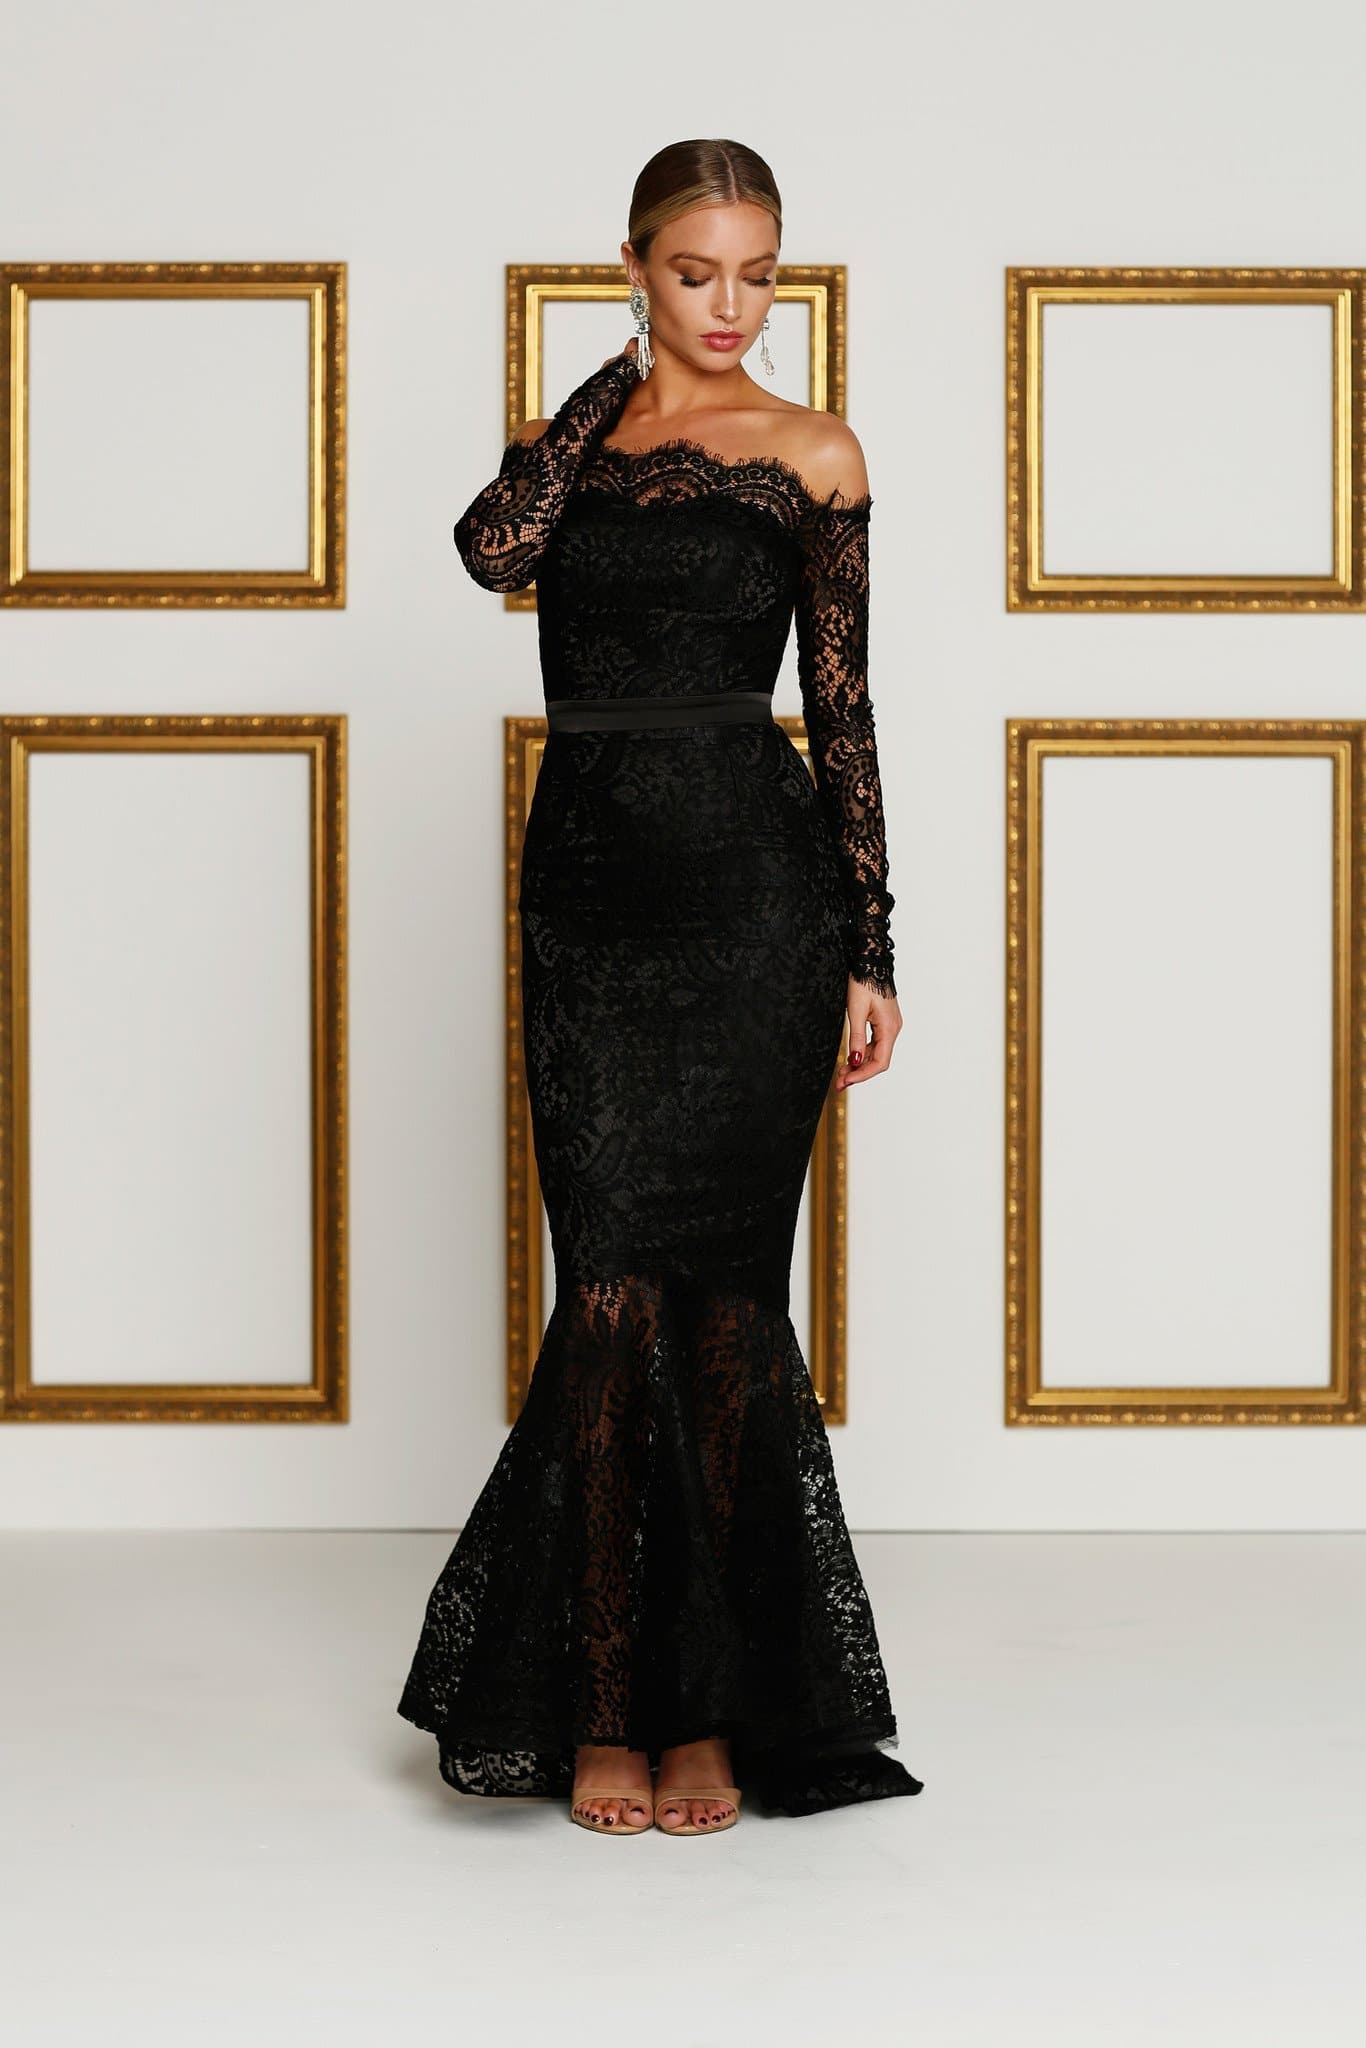 Kamali Gown - Black Lace Off-Shoulder Long Sleeve Mermaid Dress